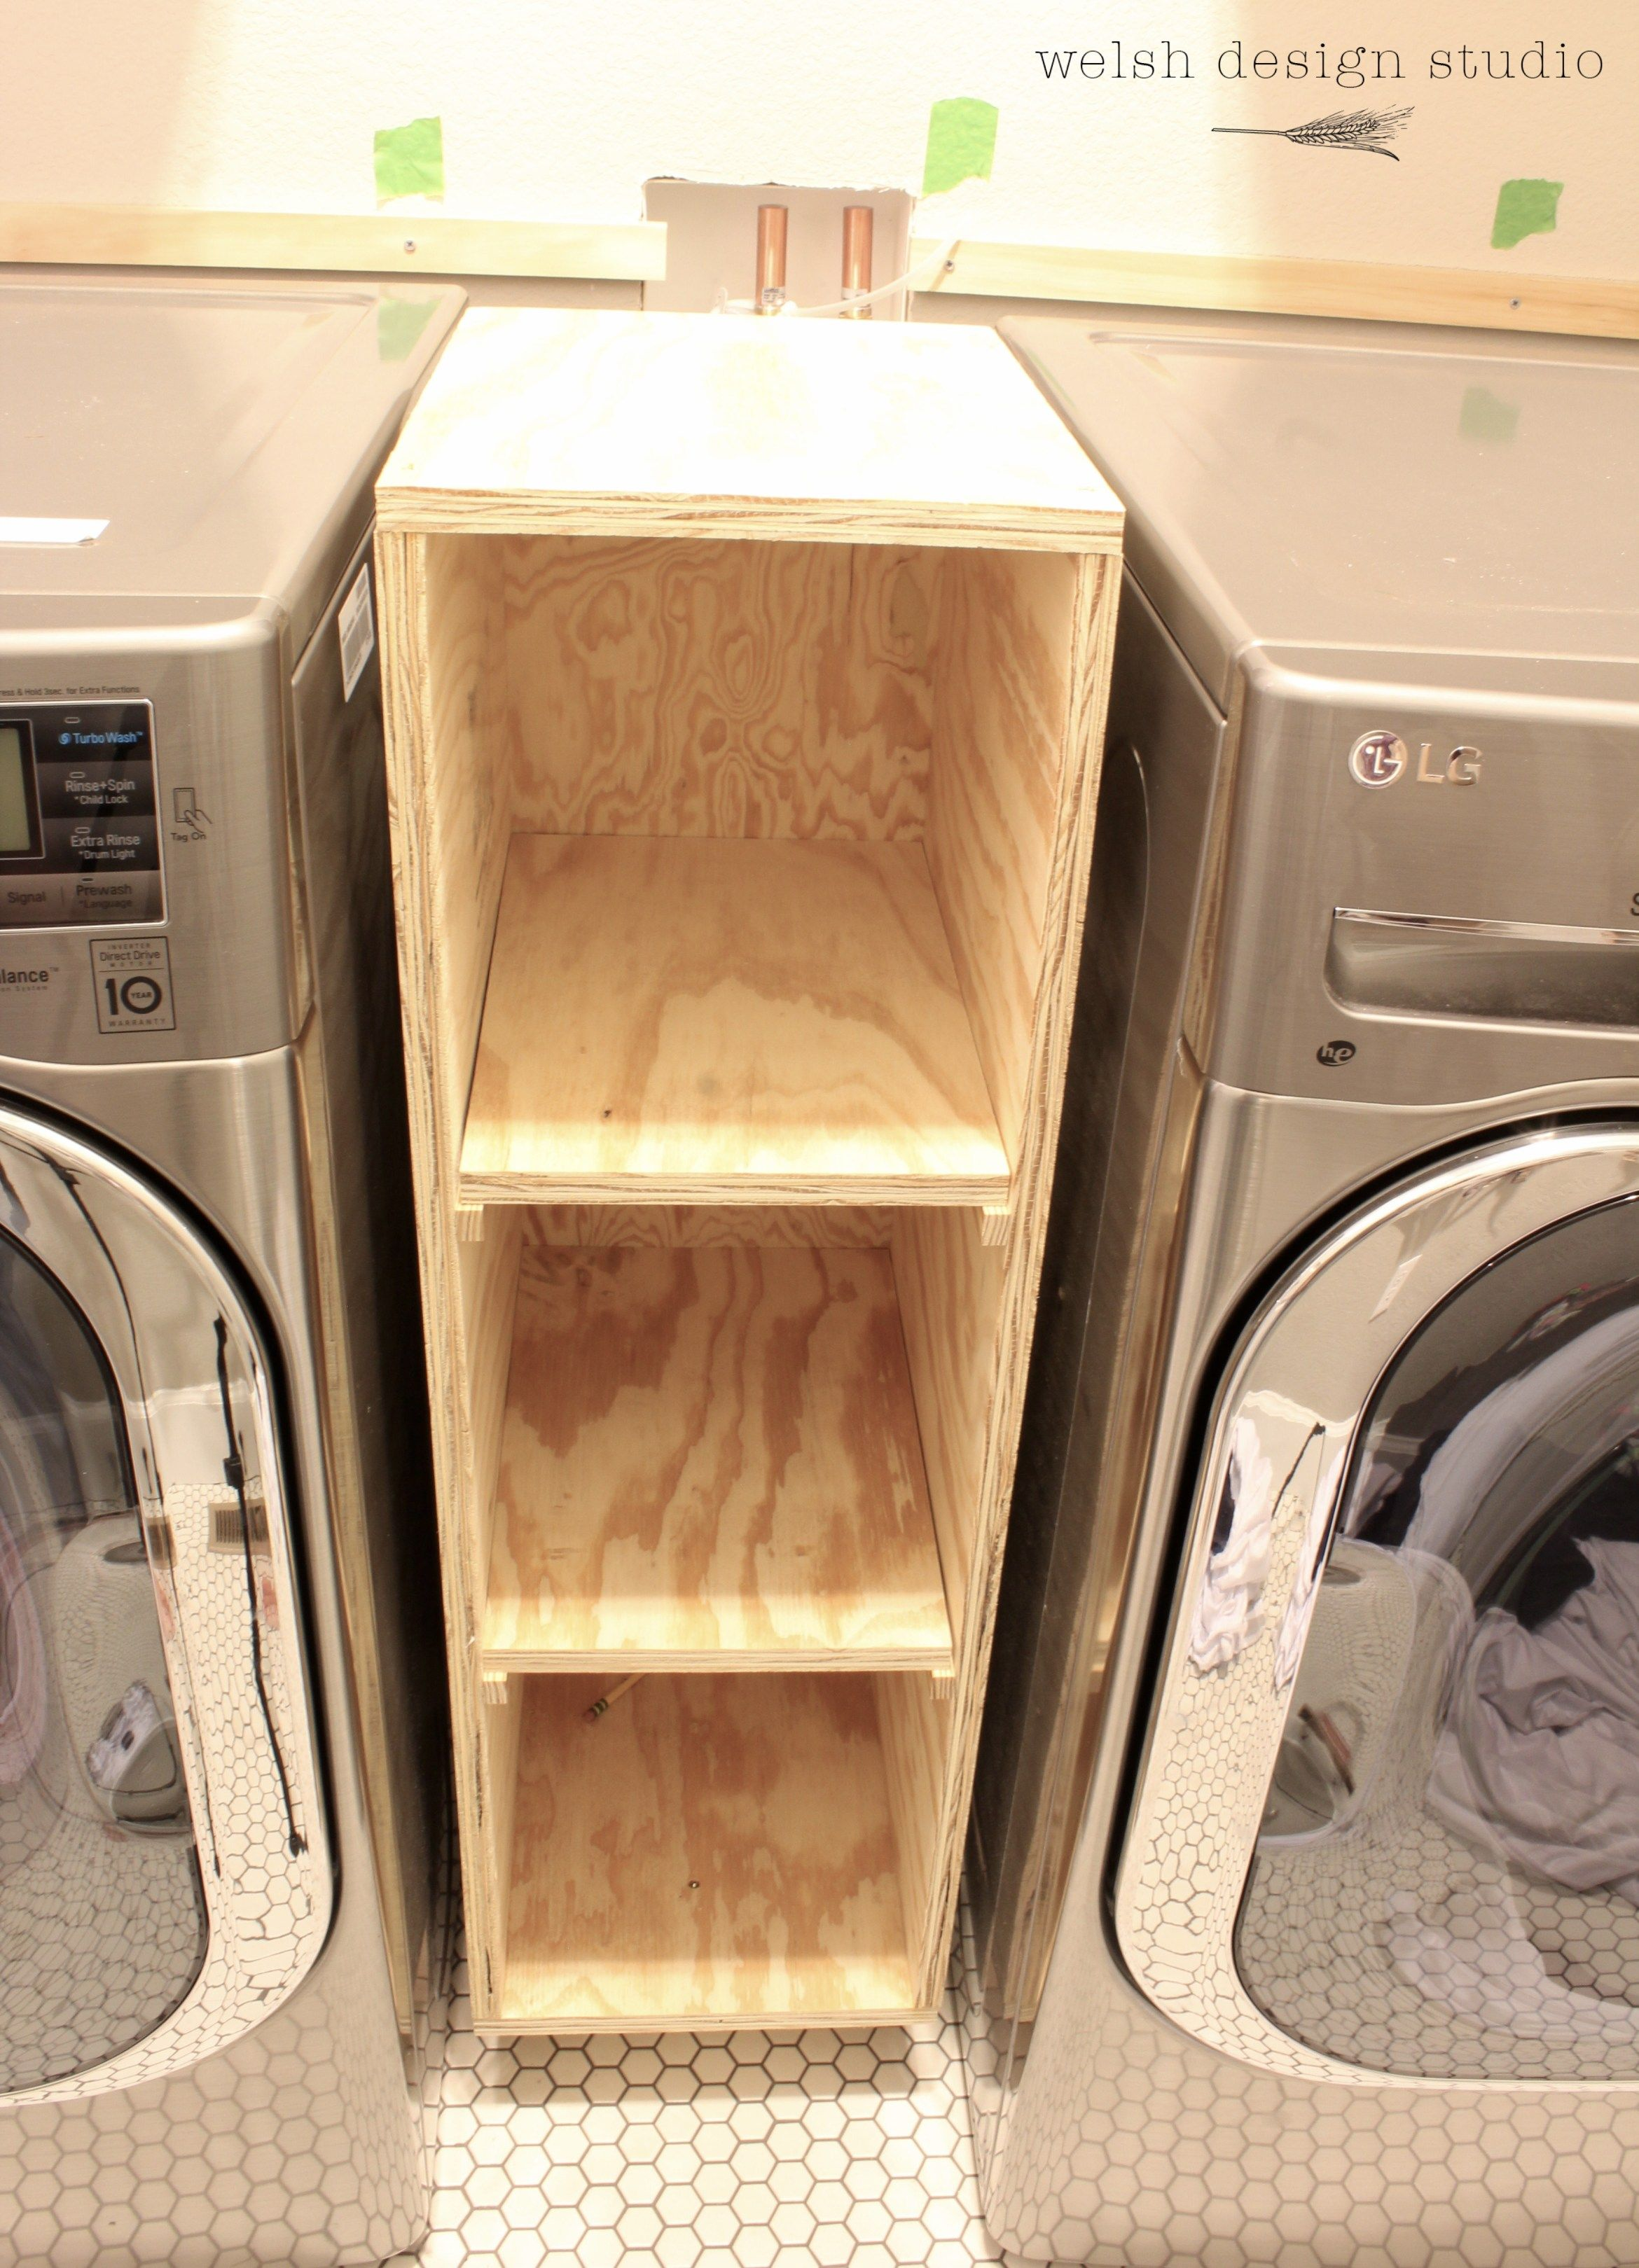 A Quick Laundry Room Makeover Update Welsh Design Studio Small Laundry Room Organization Laundry Room Diy Small Laundry Rooms